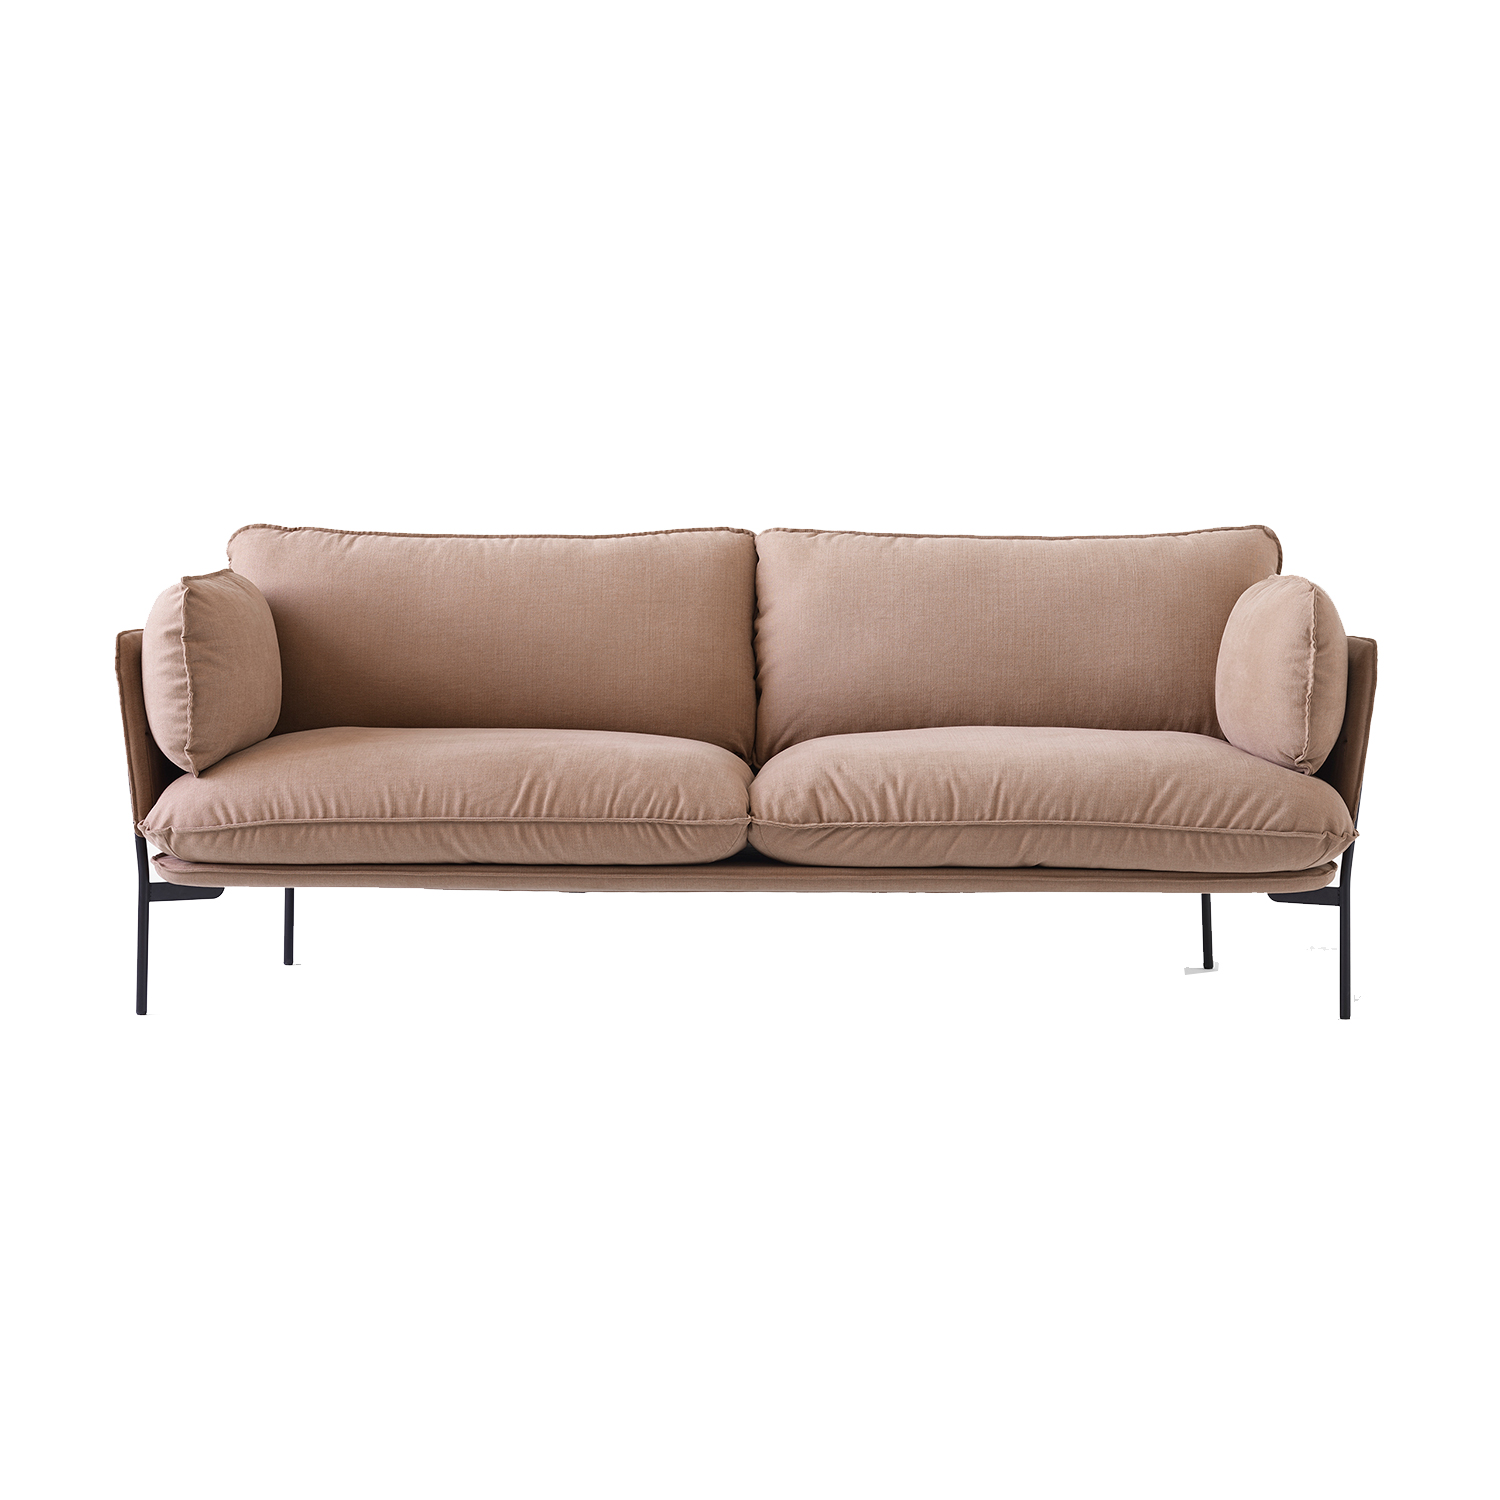 Bilde av &Tradition-Cloud 3-Seters Sofa, Svarte Bein/Hot Madison 495